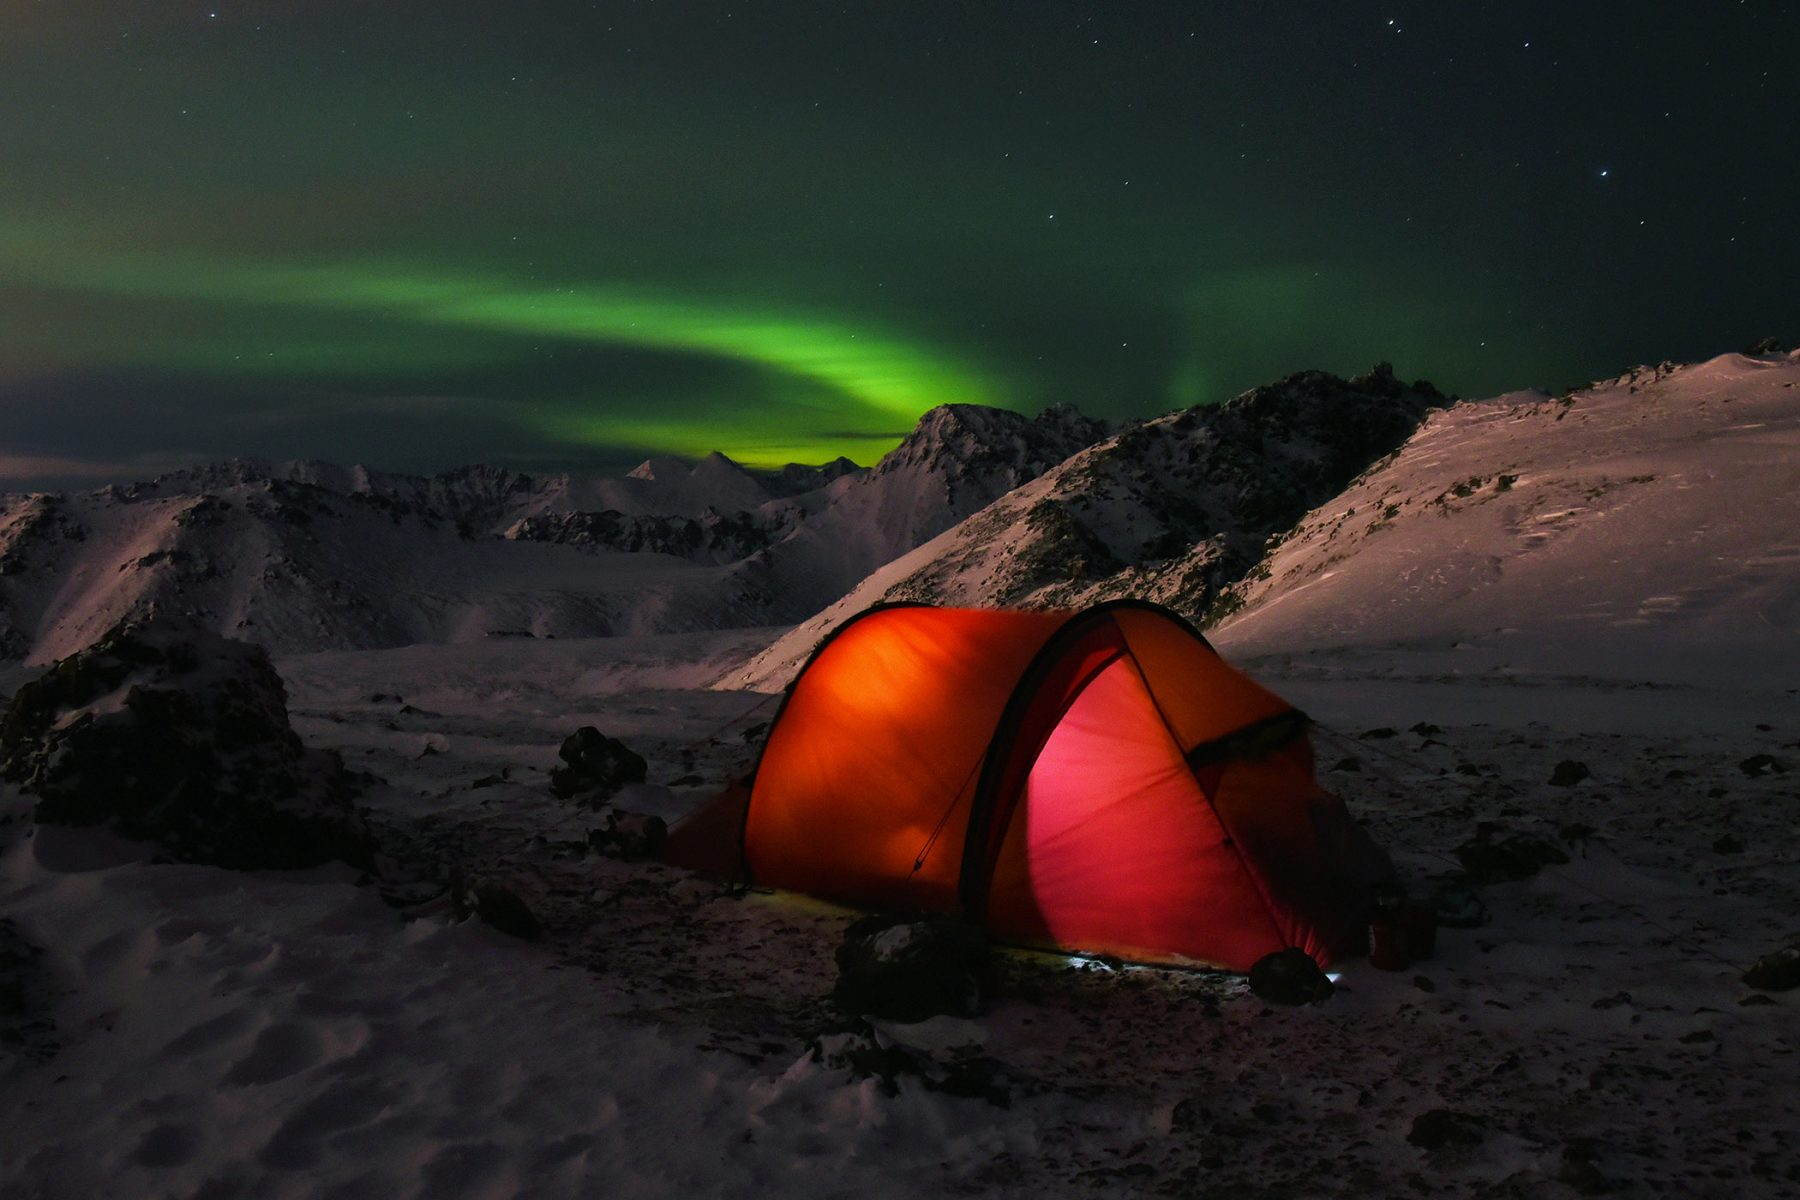 Northern lights over our tent on McHugh Peak